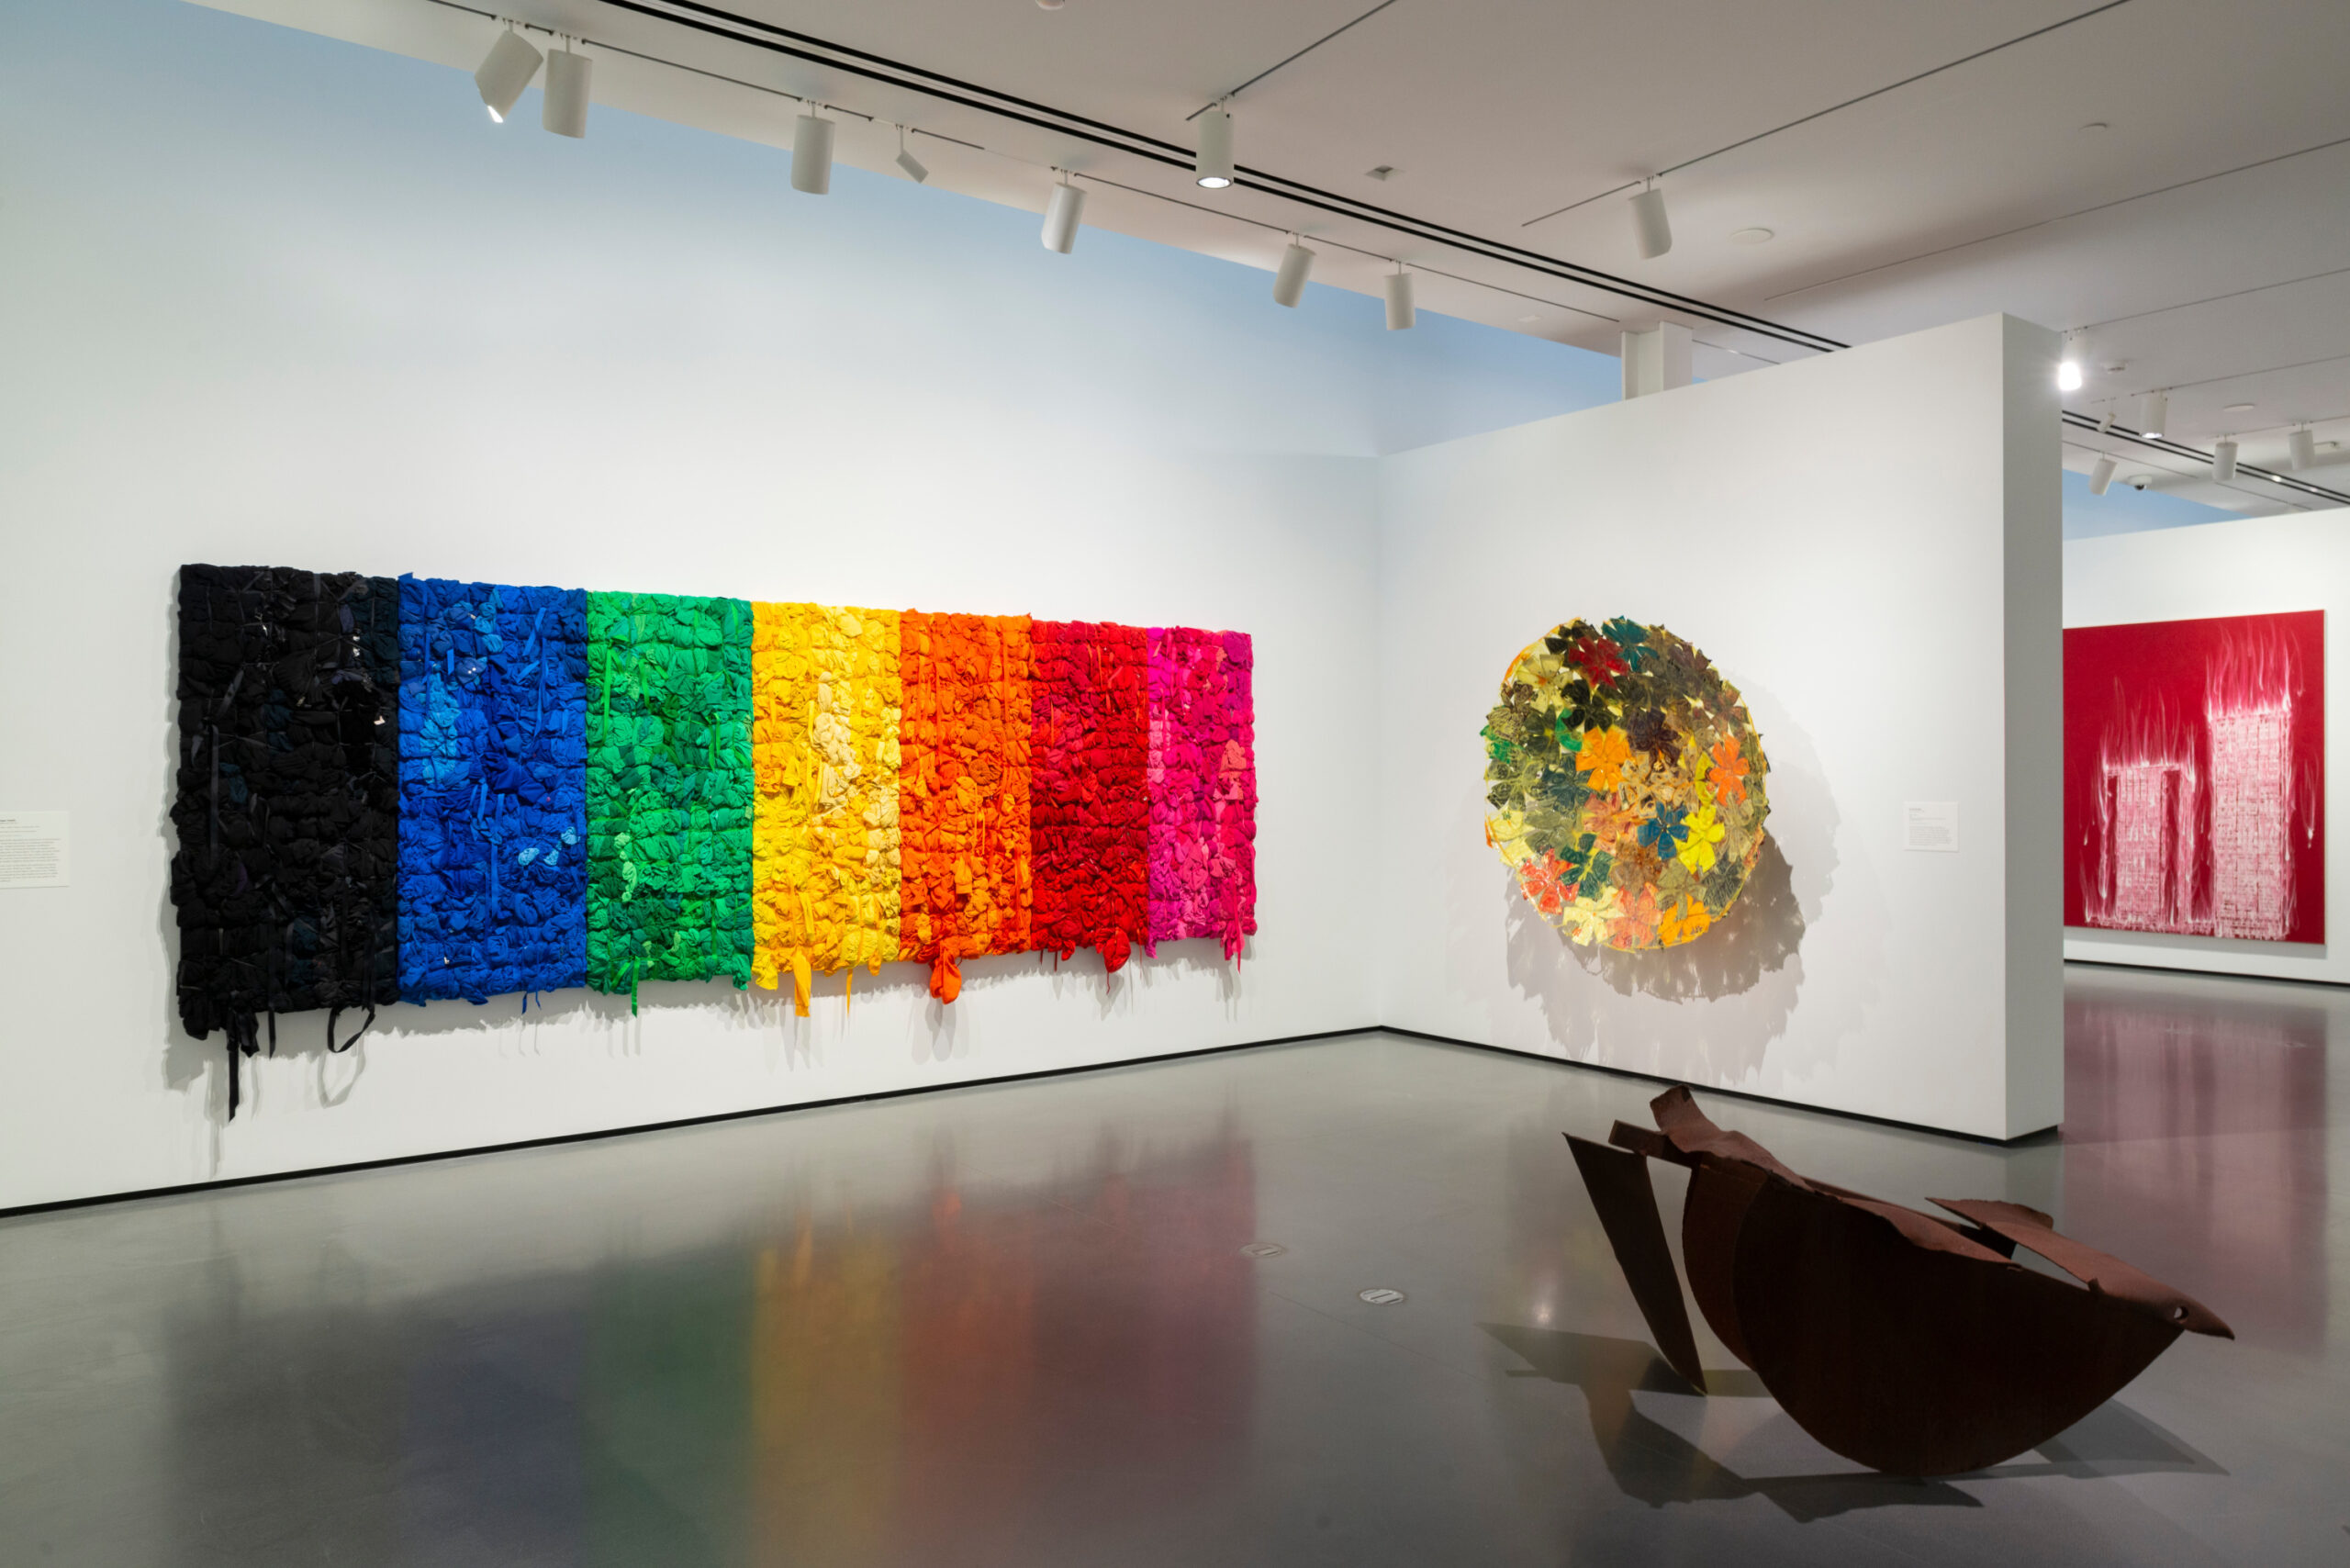 Installation view of Generations: A History of Black Abstract Art. Photo by Mitro Hood.